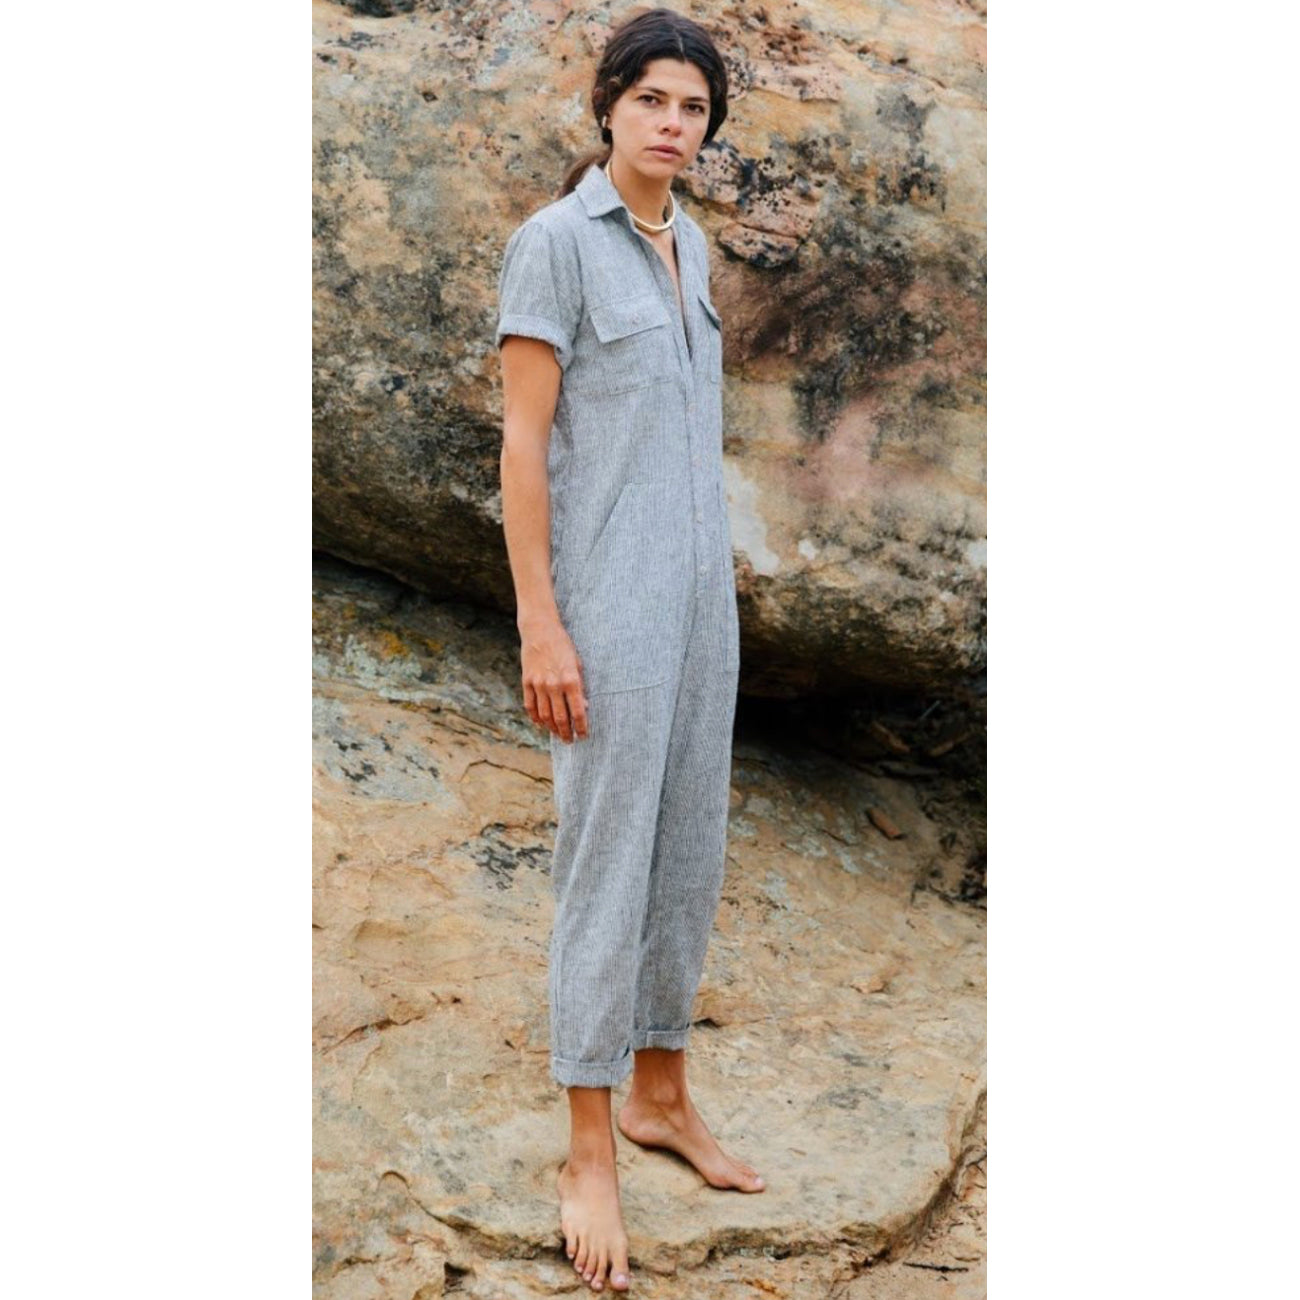 Ozma Painter's Jumpsuit in Ticking Stripe